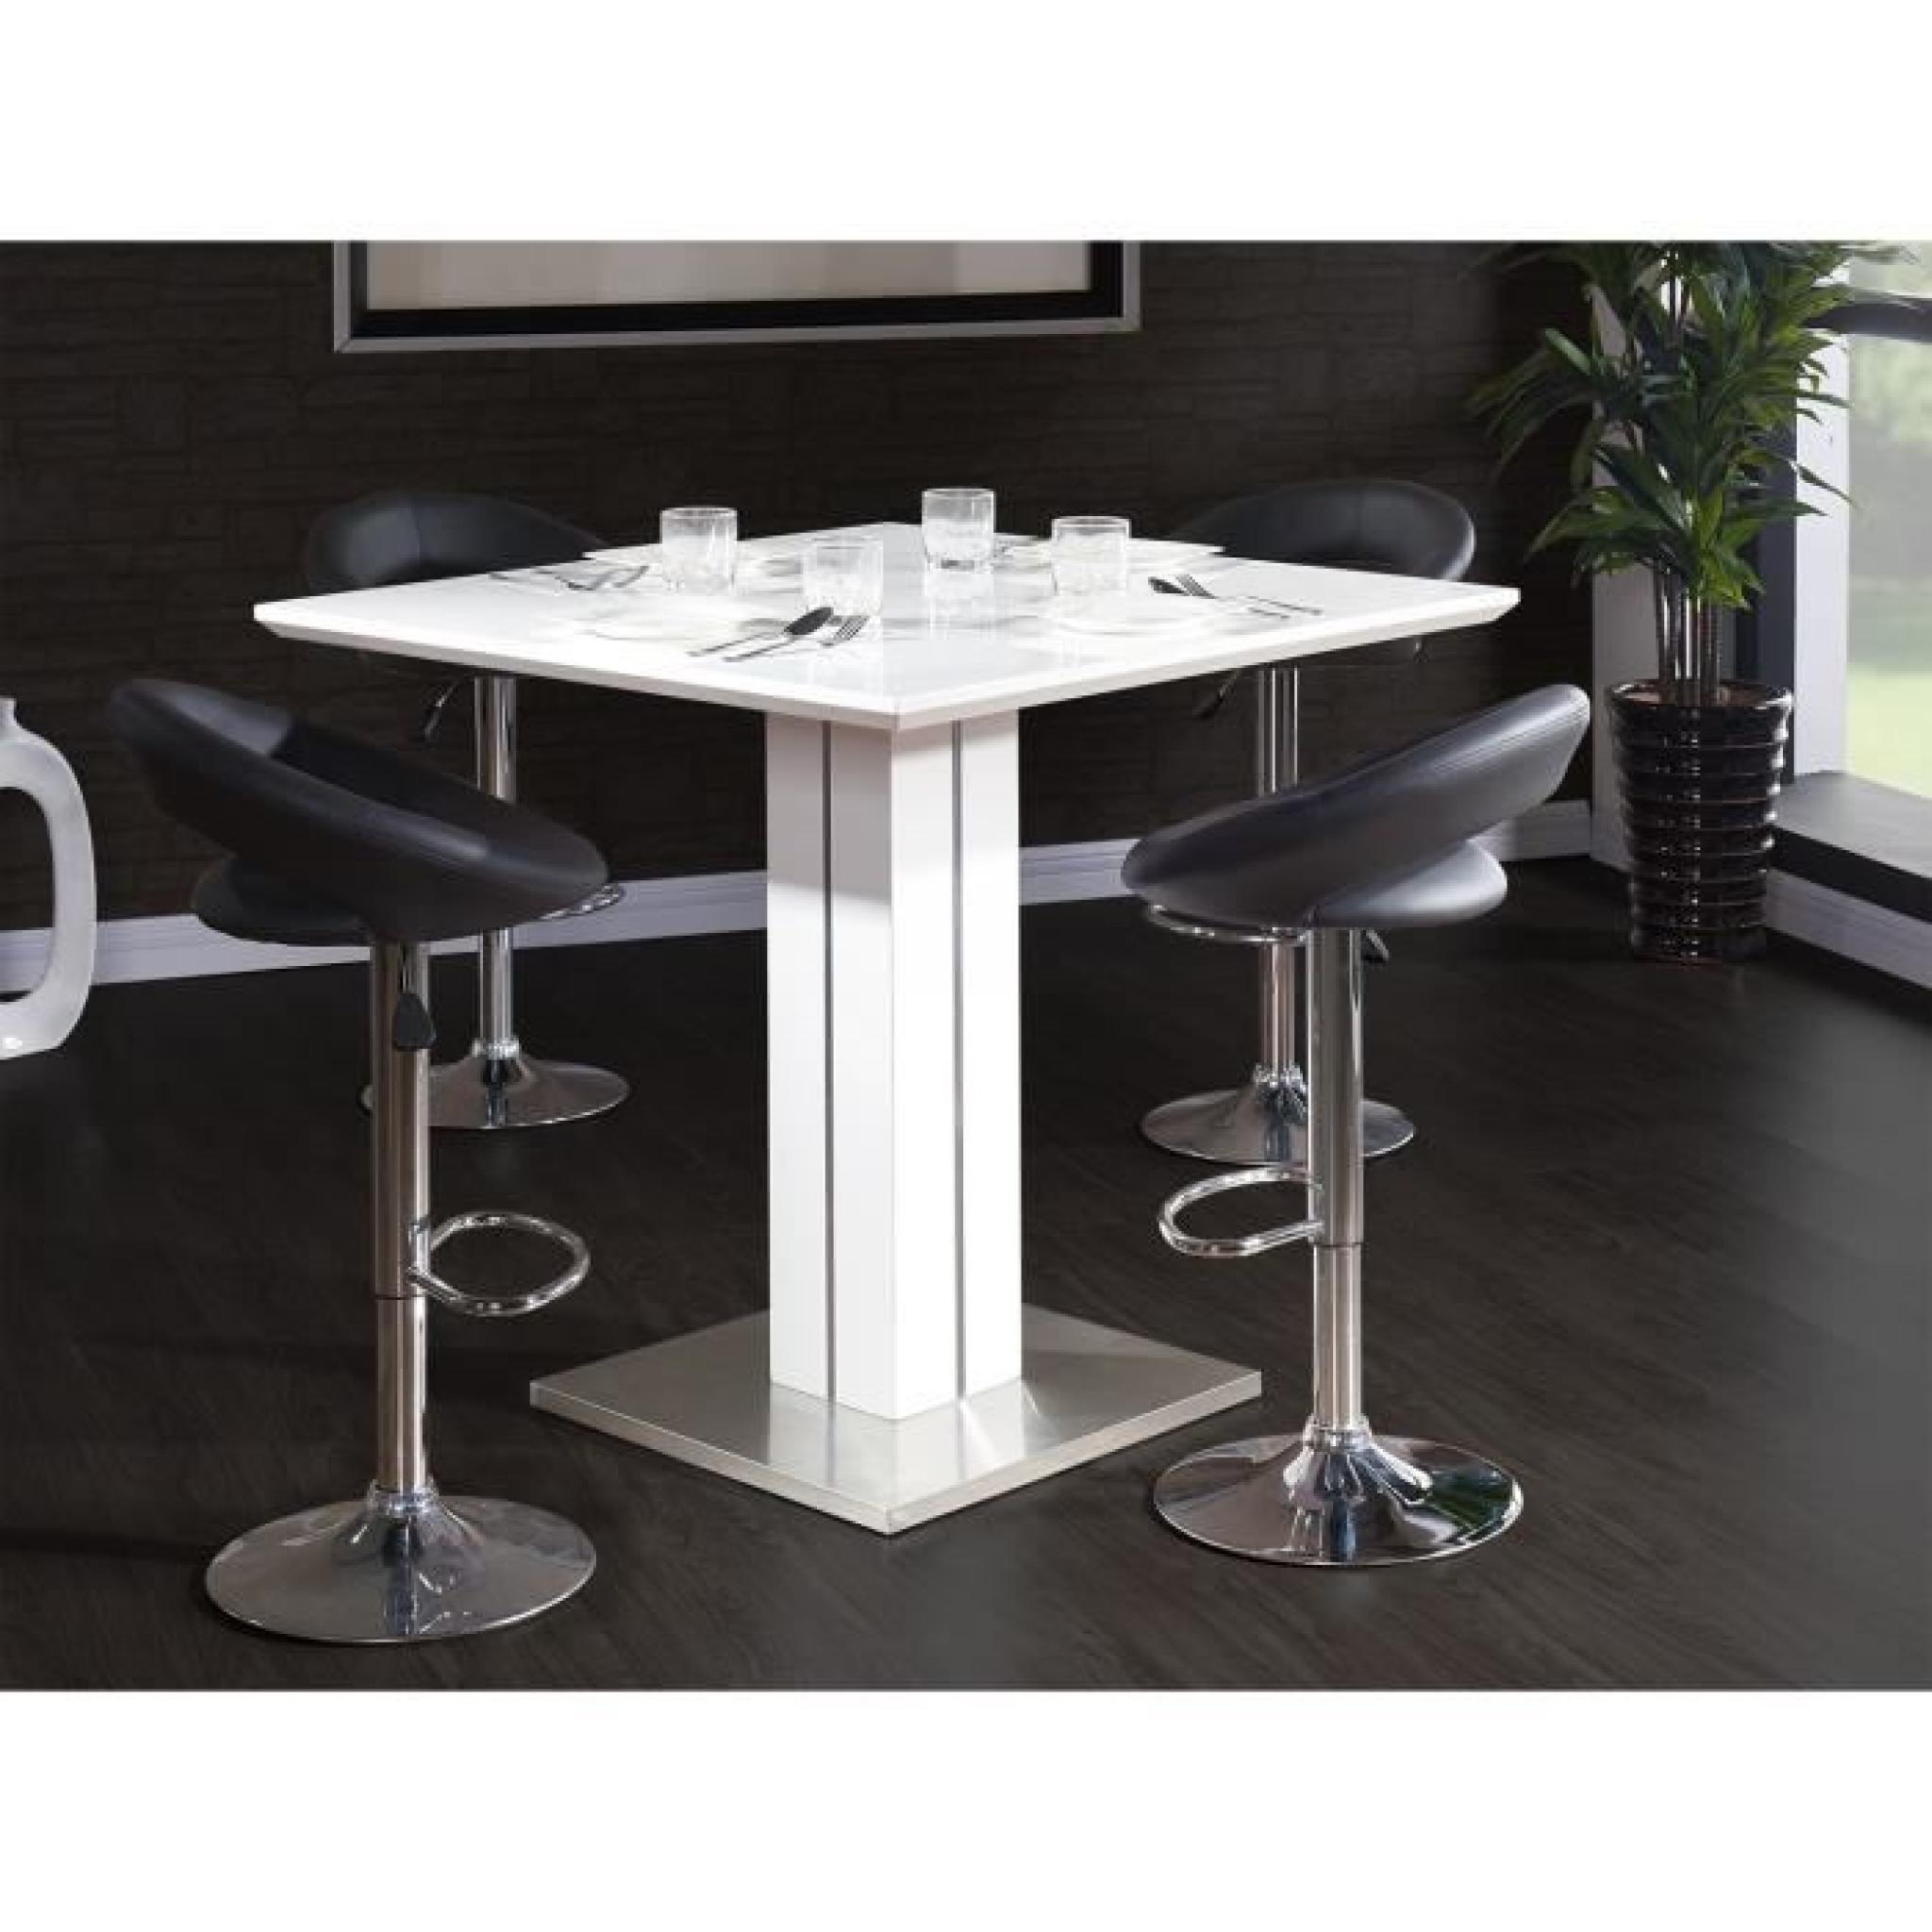 sandro table de bar 100x100cm laqu blanc brillant achat vente table salle a manger pas cher. Black Bedroom Furniture Sets. Home Design Ideas